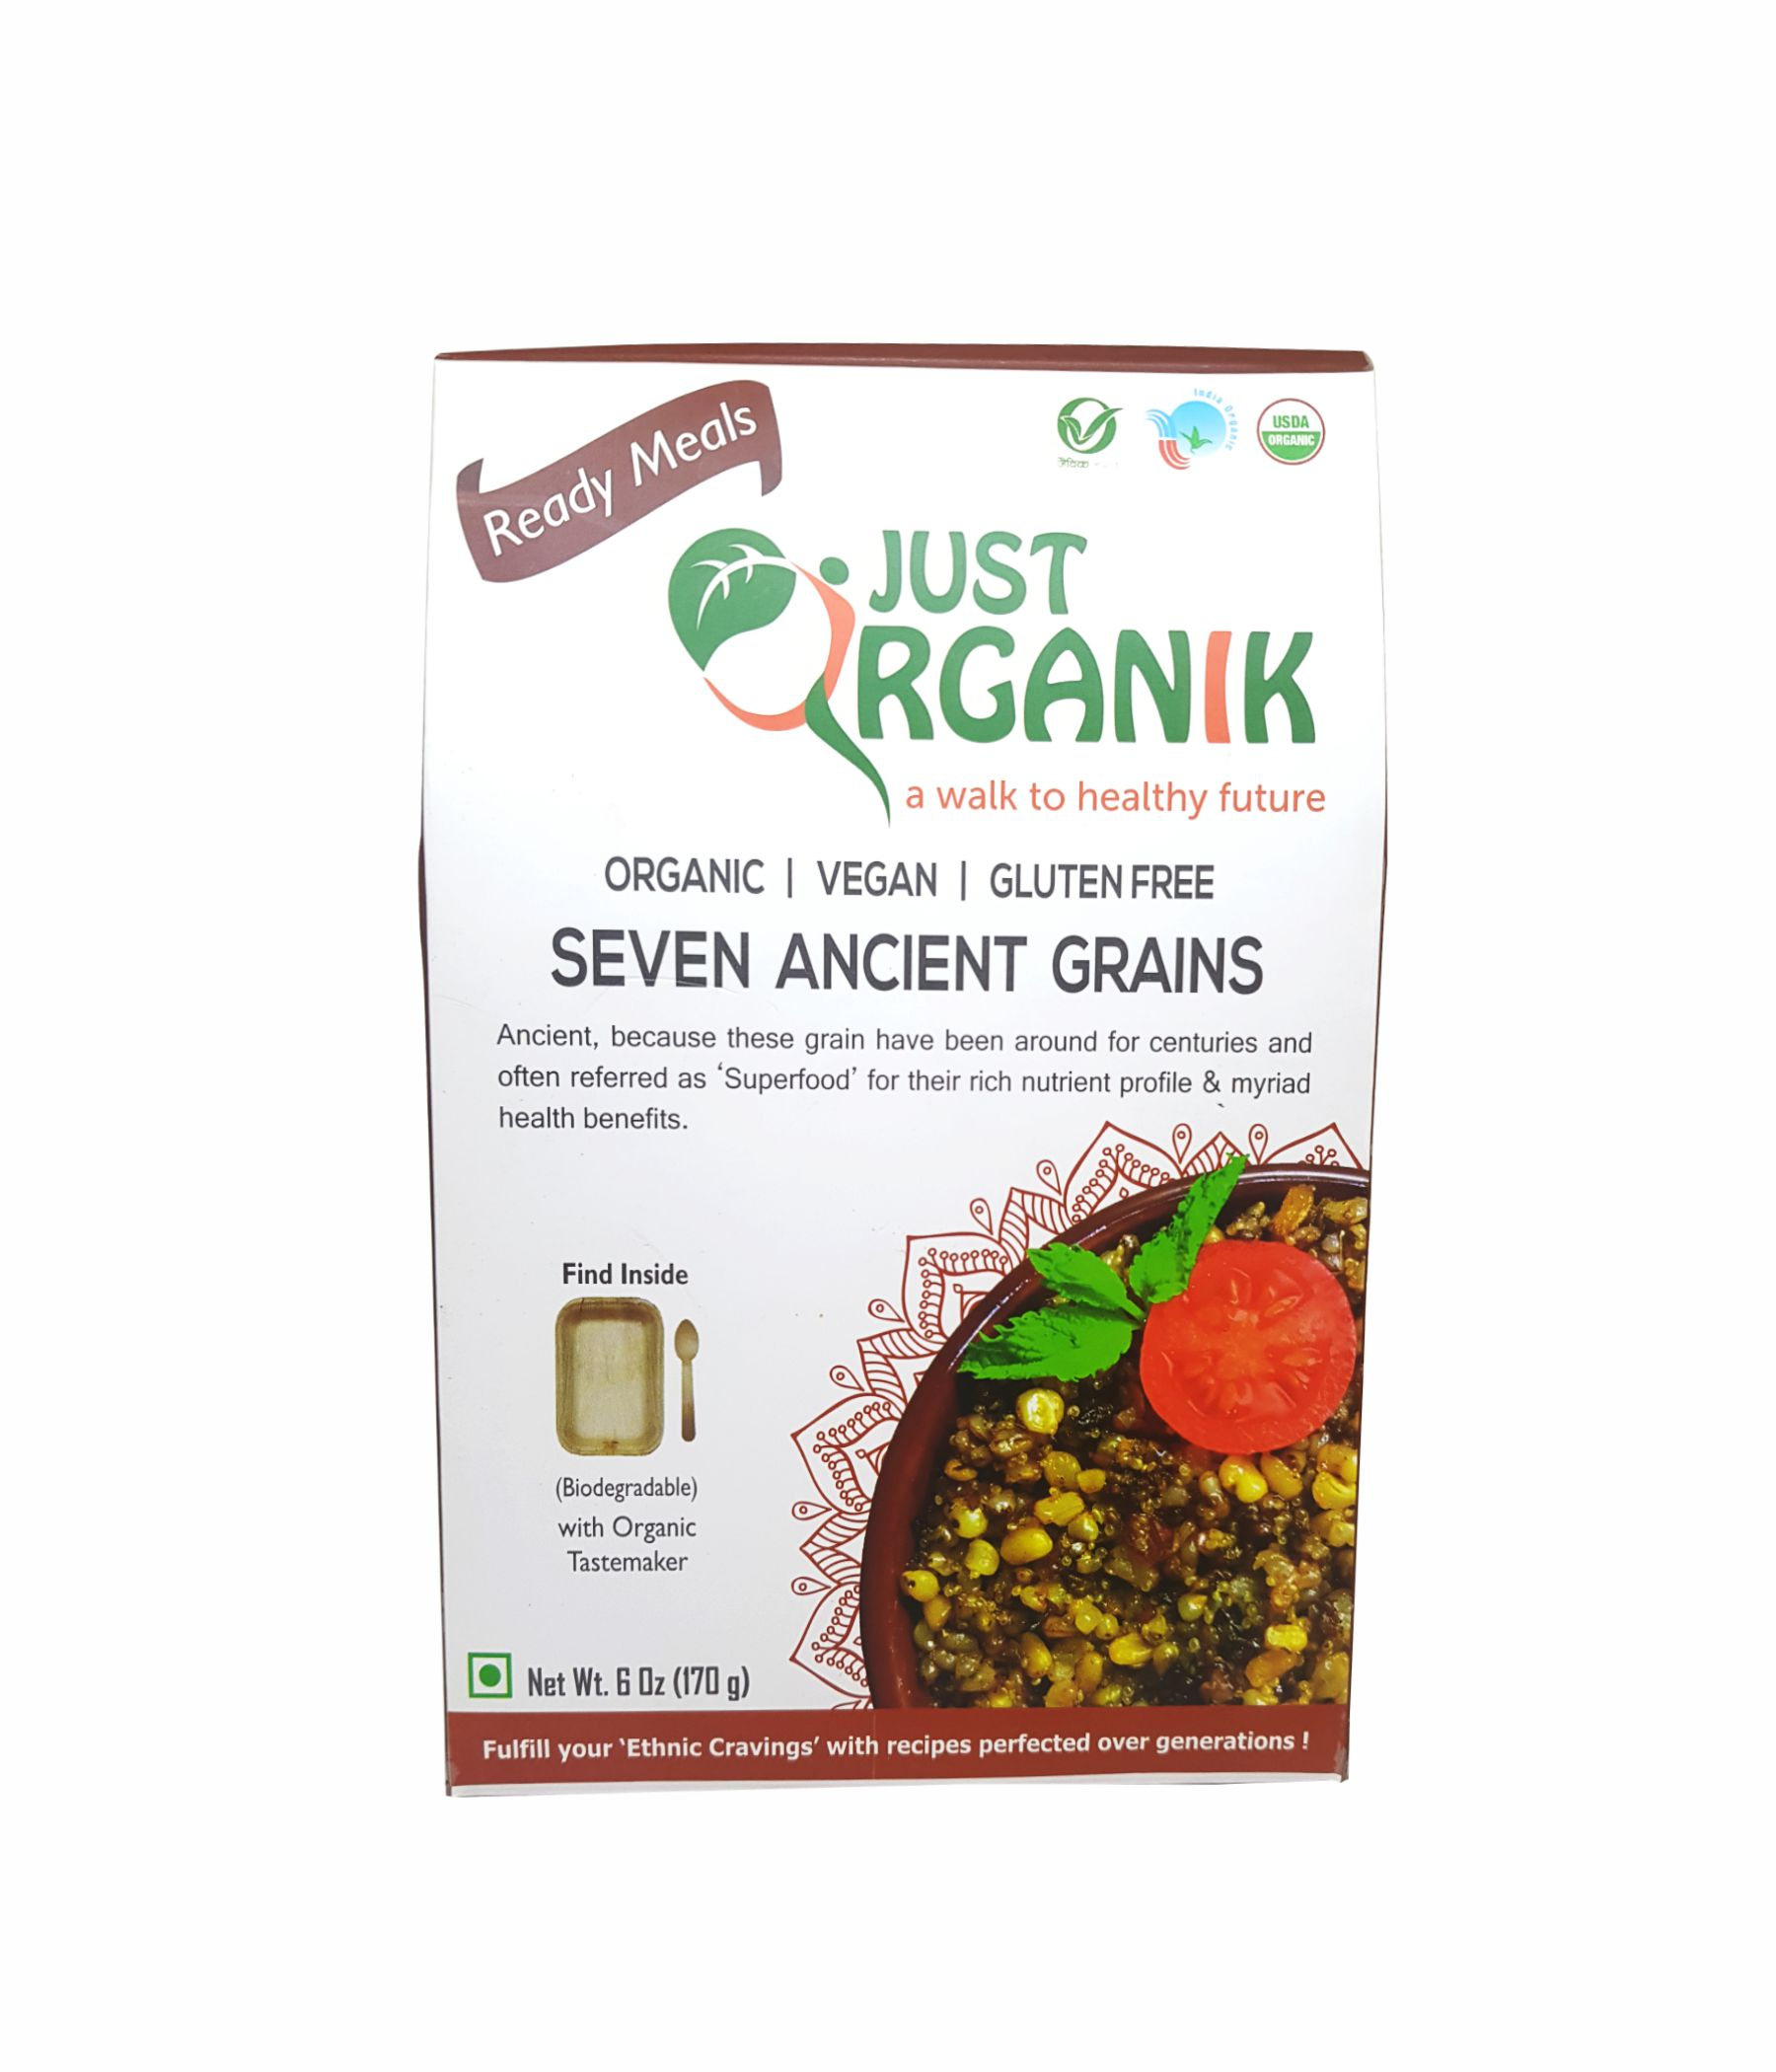 JUST ORGANIK READY TO EAT MEALS - SEVEN ANCIENT GRAINS